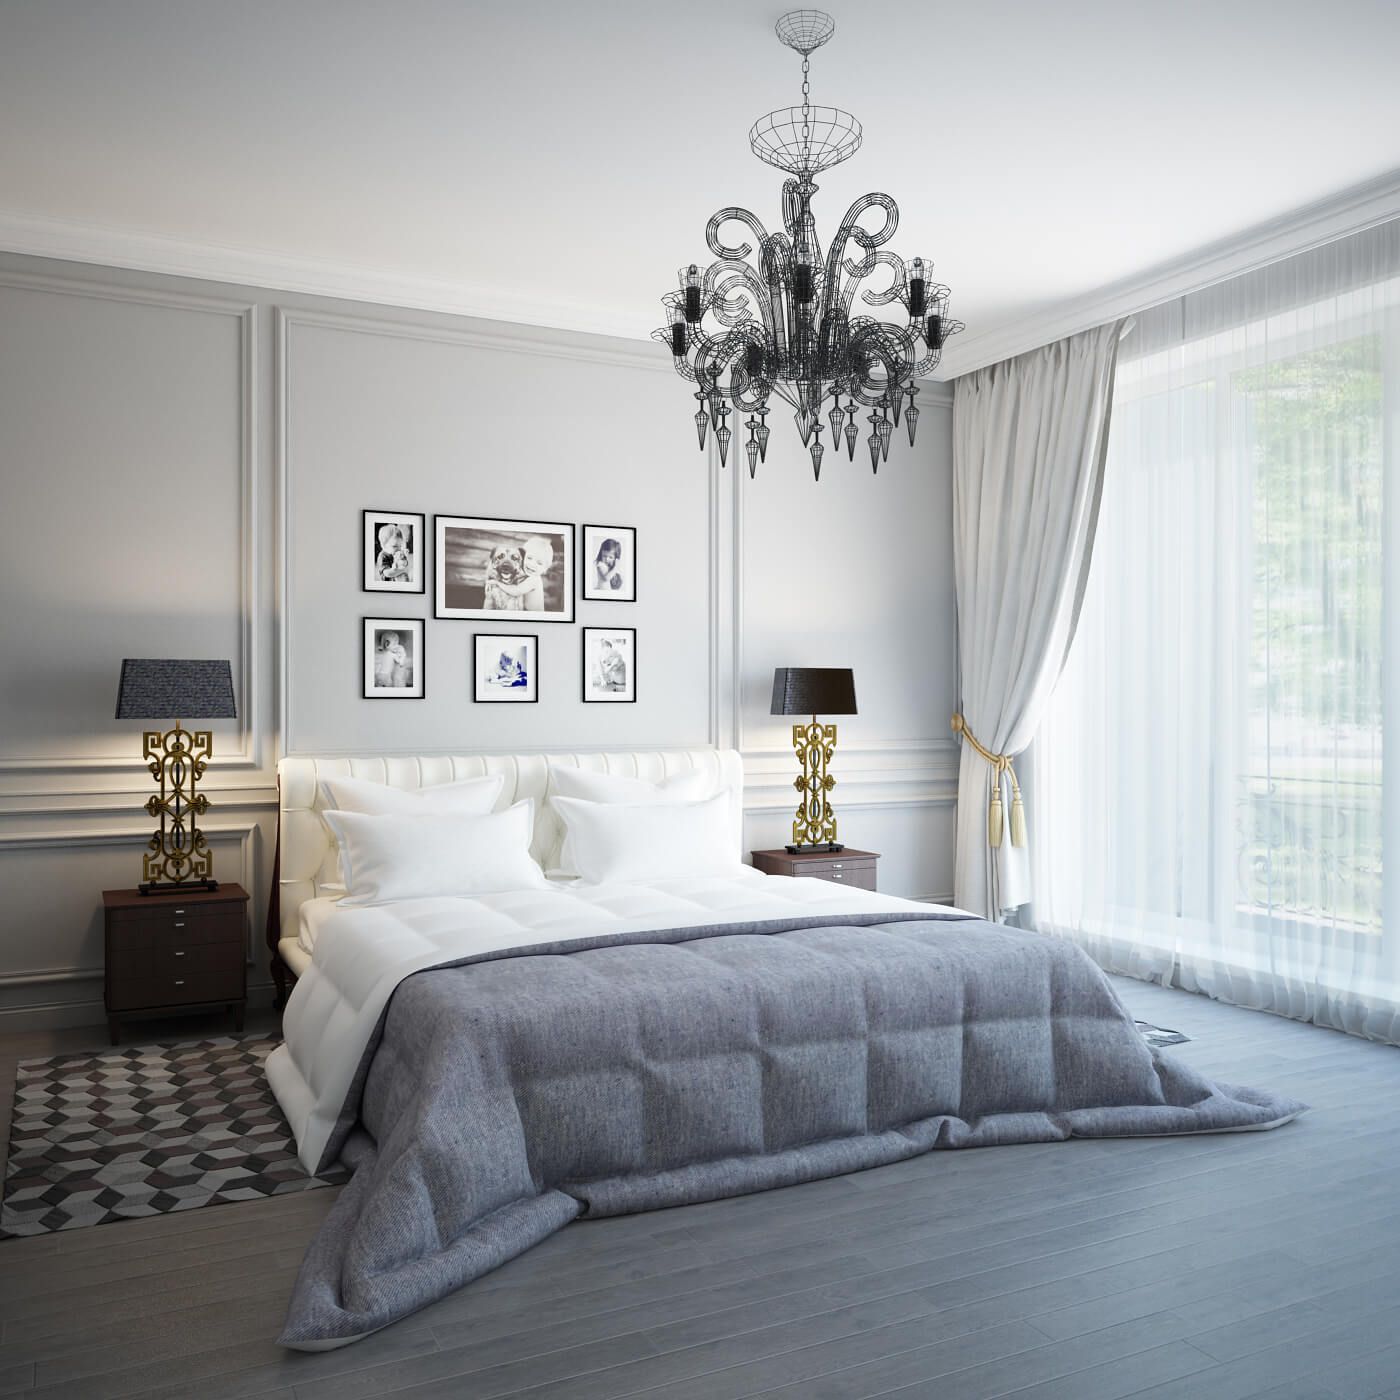 10 Bedroom Decorations that Will Inspire You -